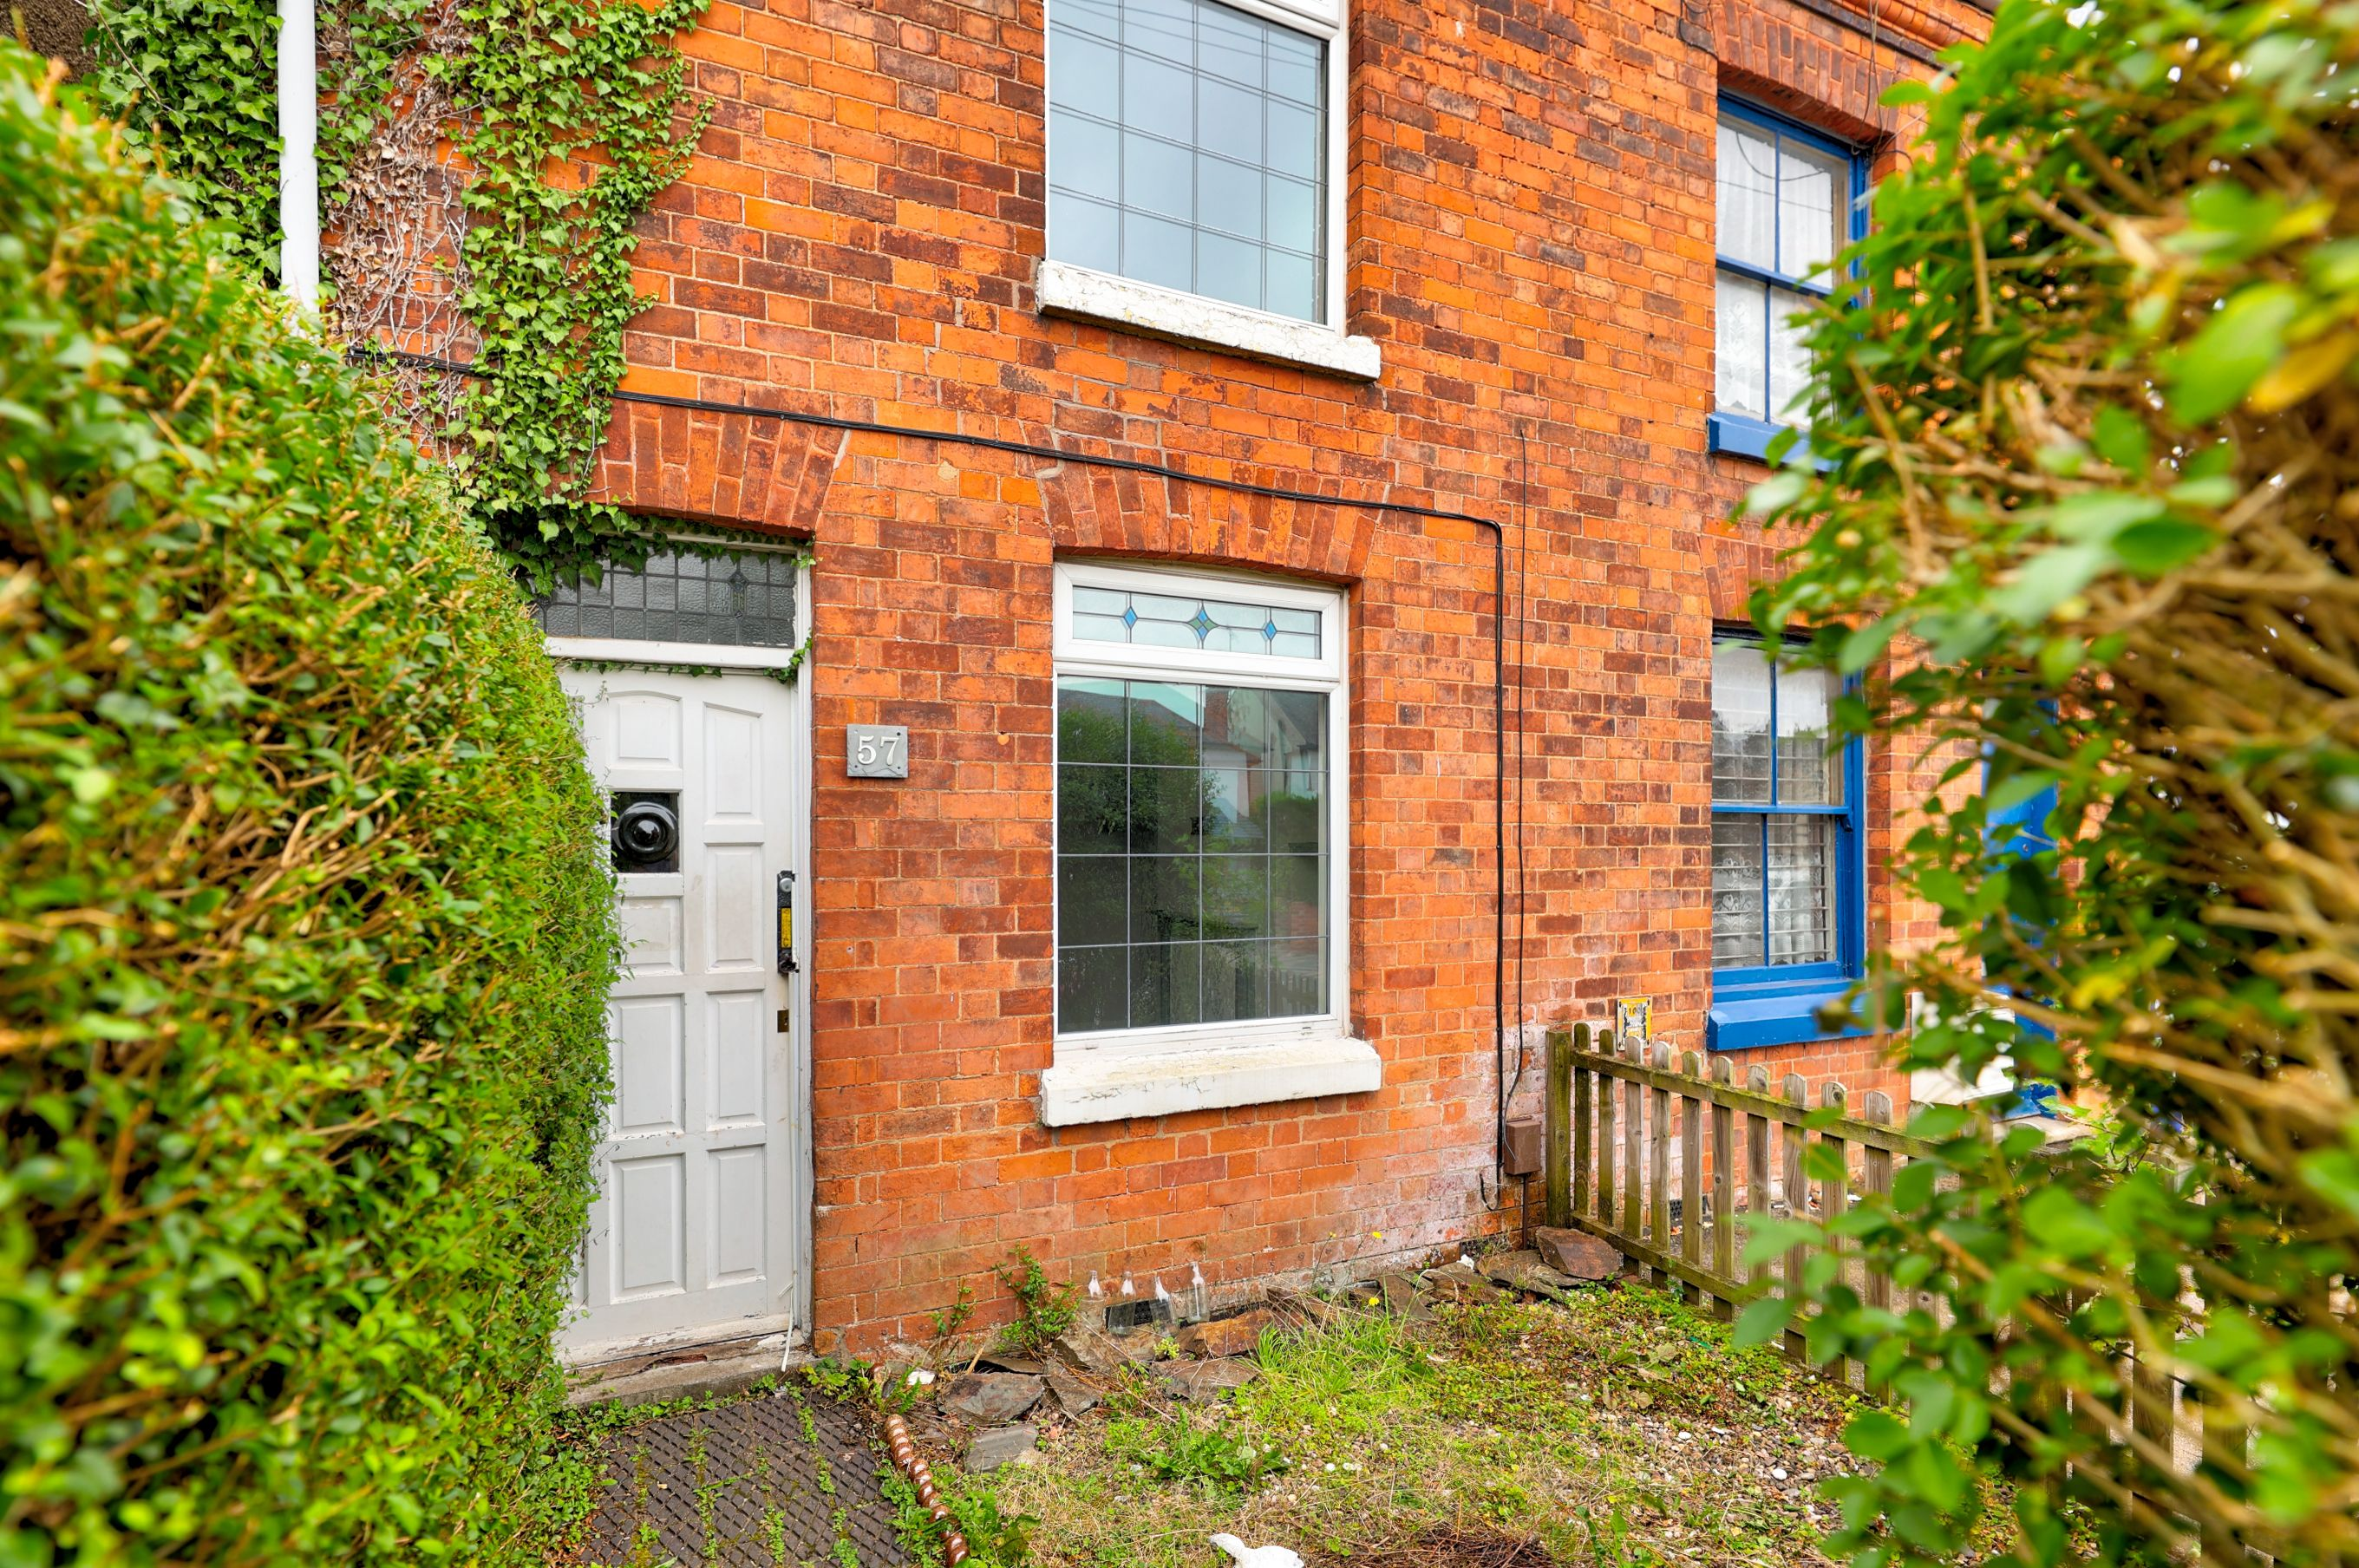 3 bed terraced house for sale in Sketchley Road, Burbage, LE10, Hinckley  - Property Image 1